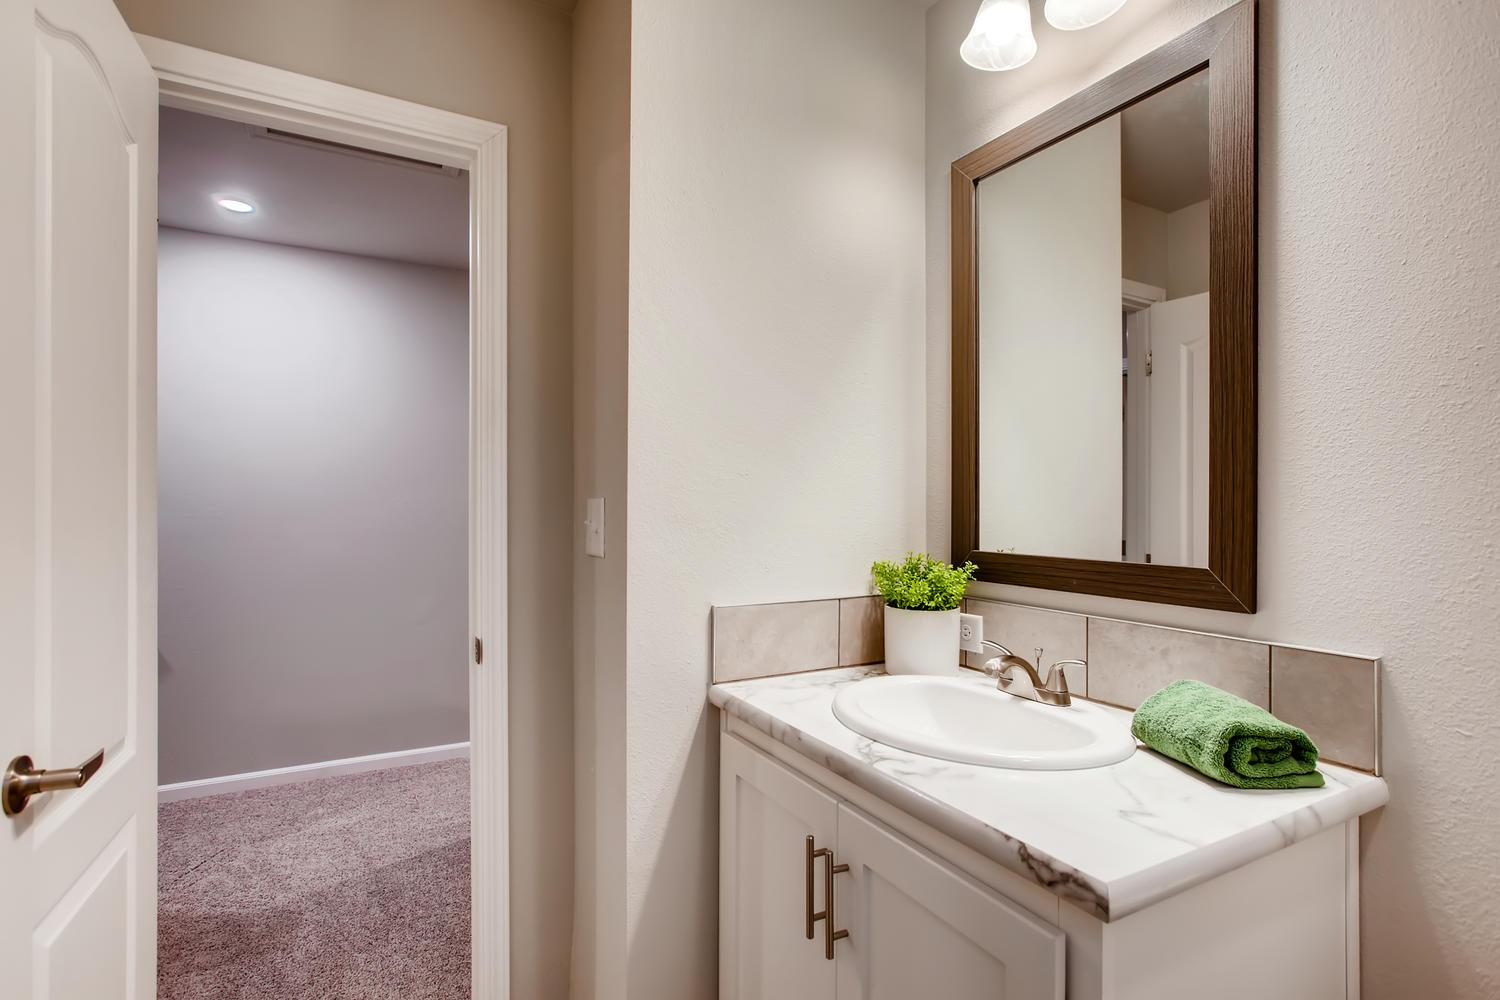 Bathroom featured in the Pollux II By RichfieldHomes in Fort Collins-Loveland, CO